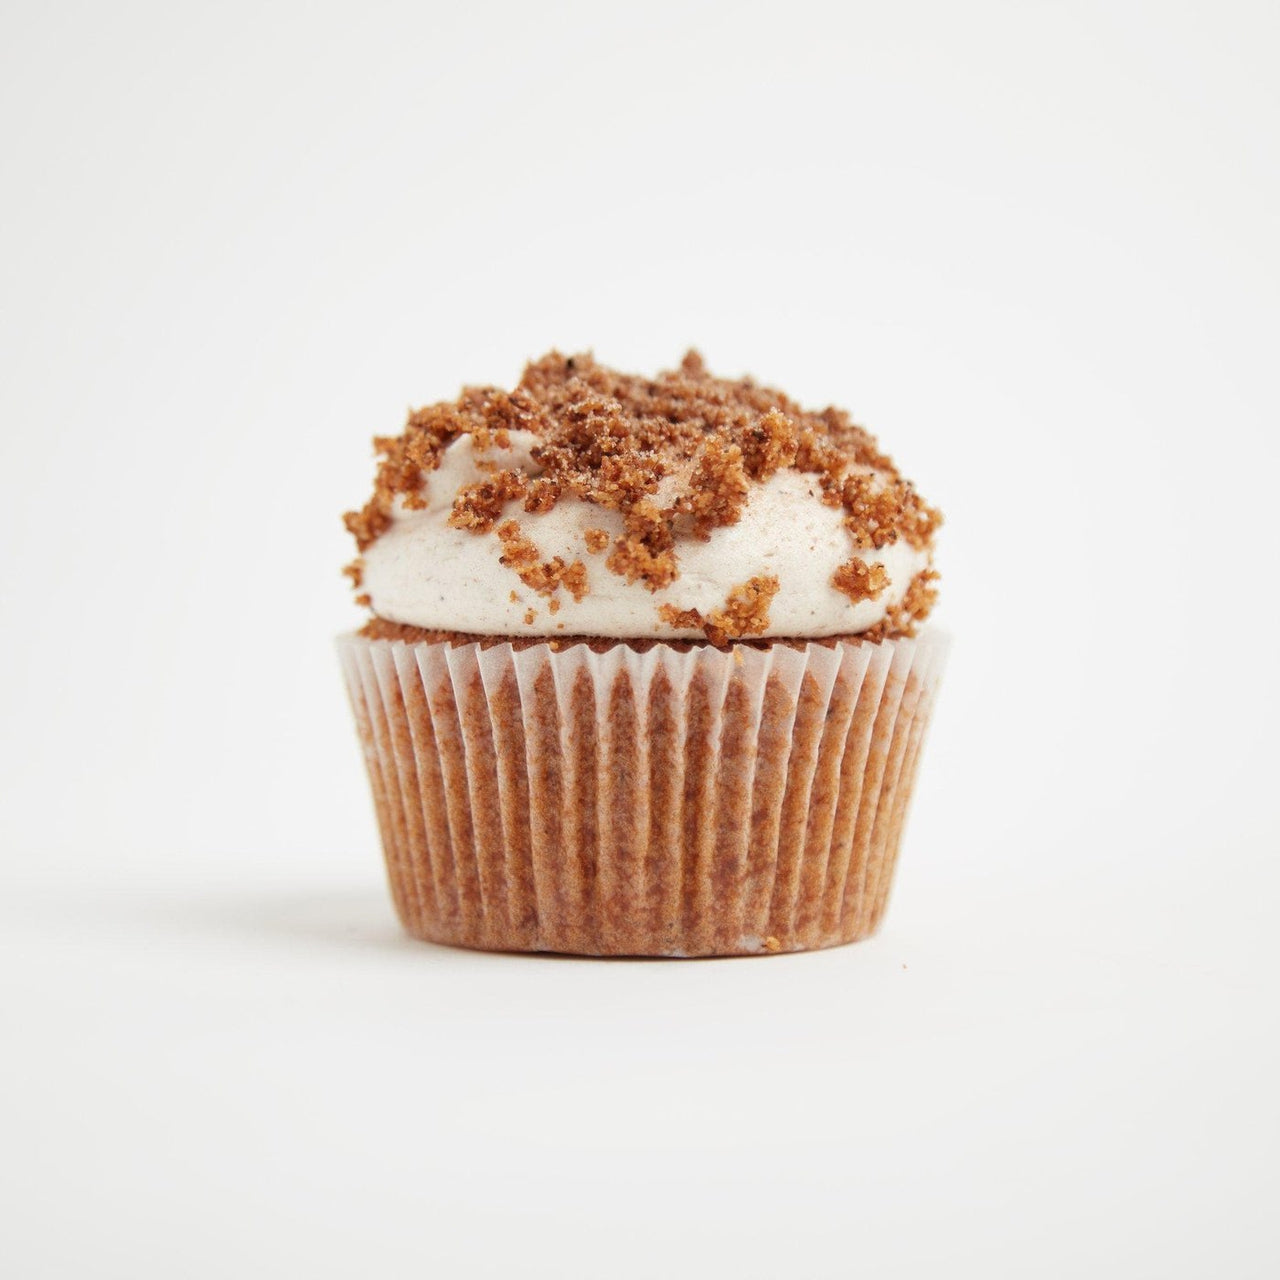 Cinnamon Toast Cupcakes by Crumbs & Doilies